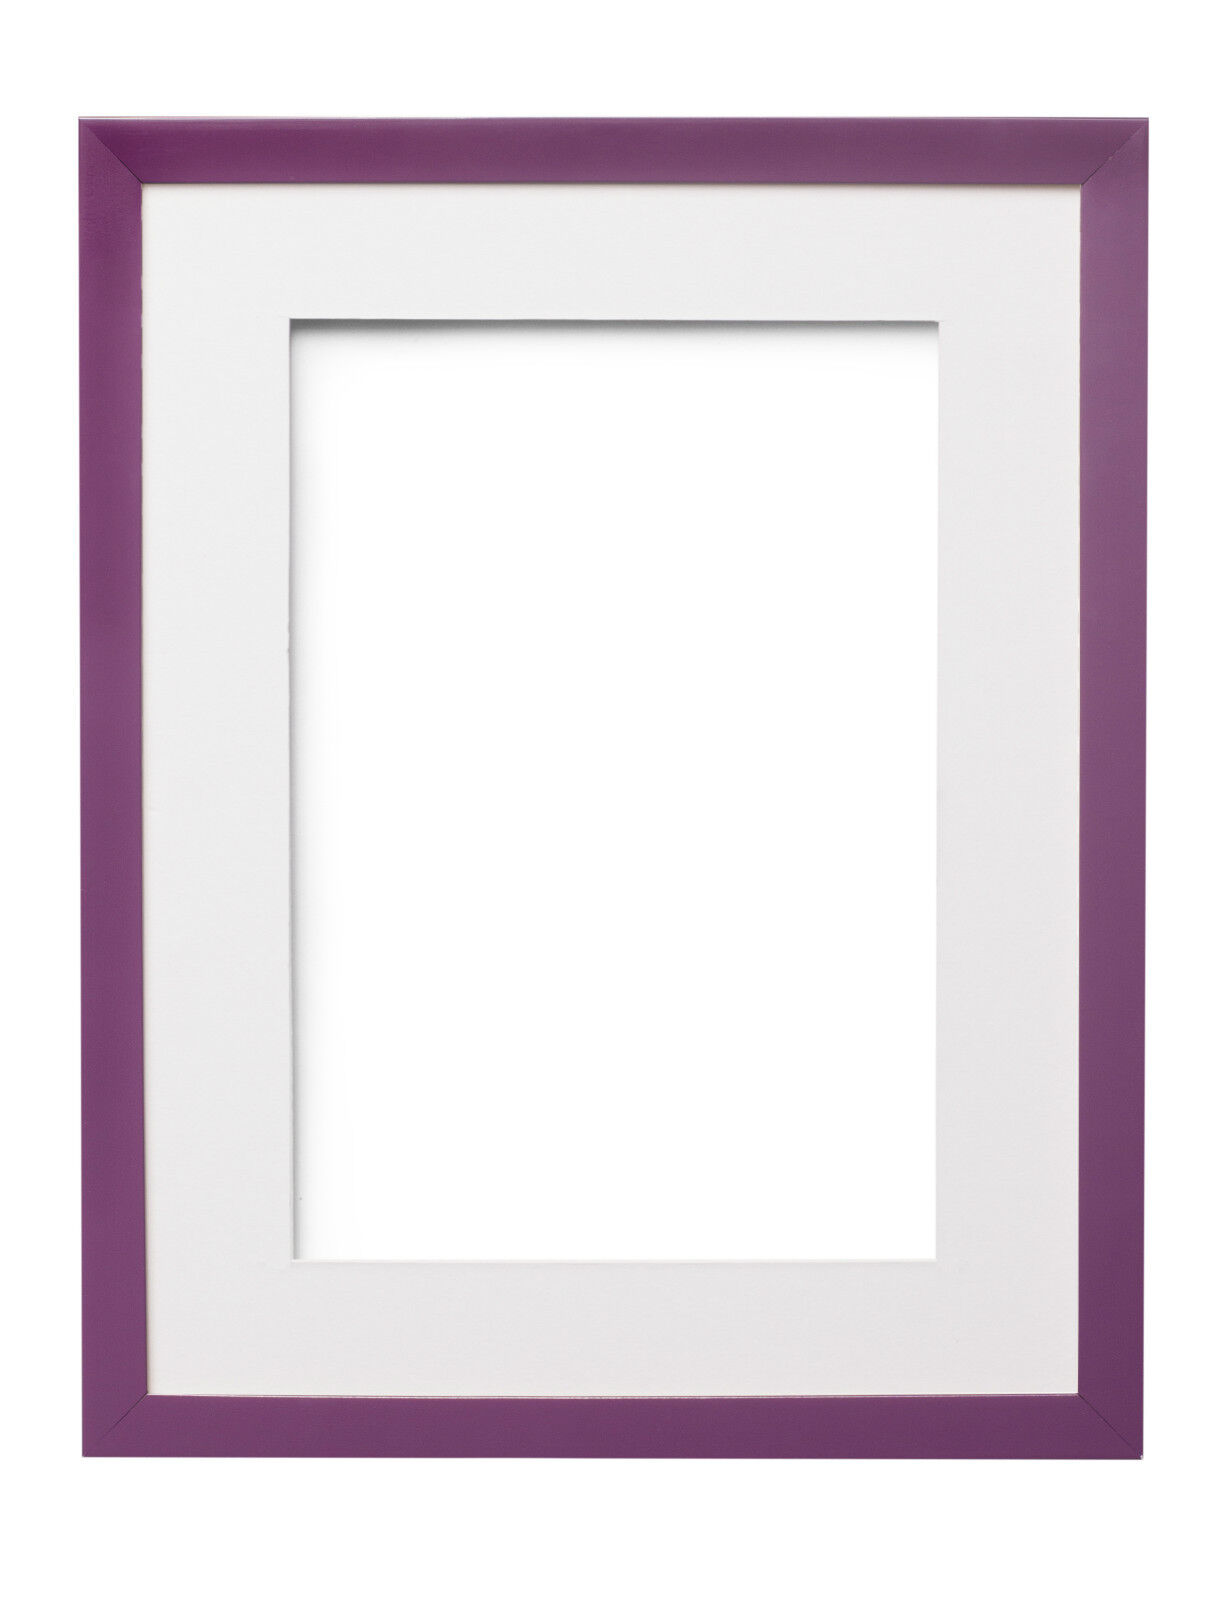 RAINBOW RANGE PICTURE FRAME PHOTO FRAME POSTER FRAME PURPLE WITH ...